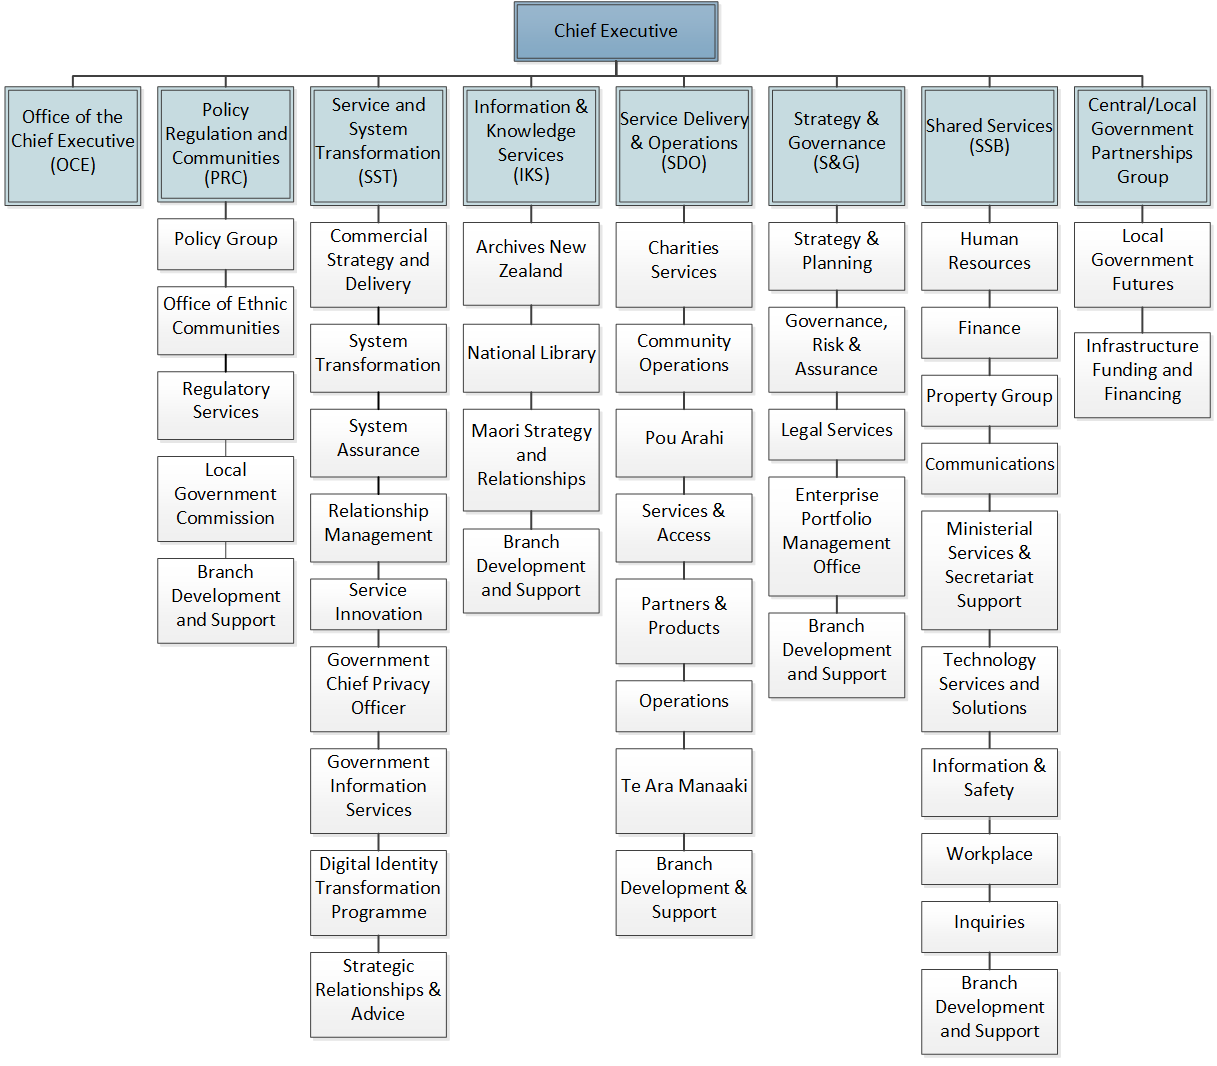 Organization Chart For Kitchen Department: About Internal Affairs